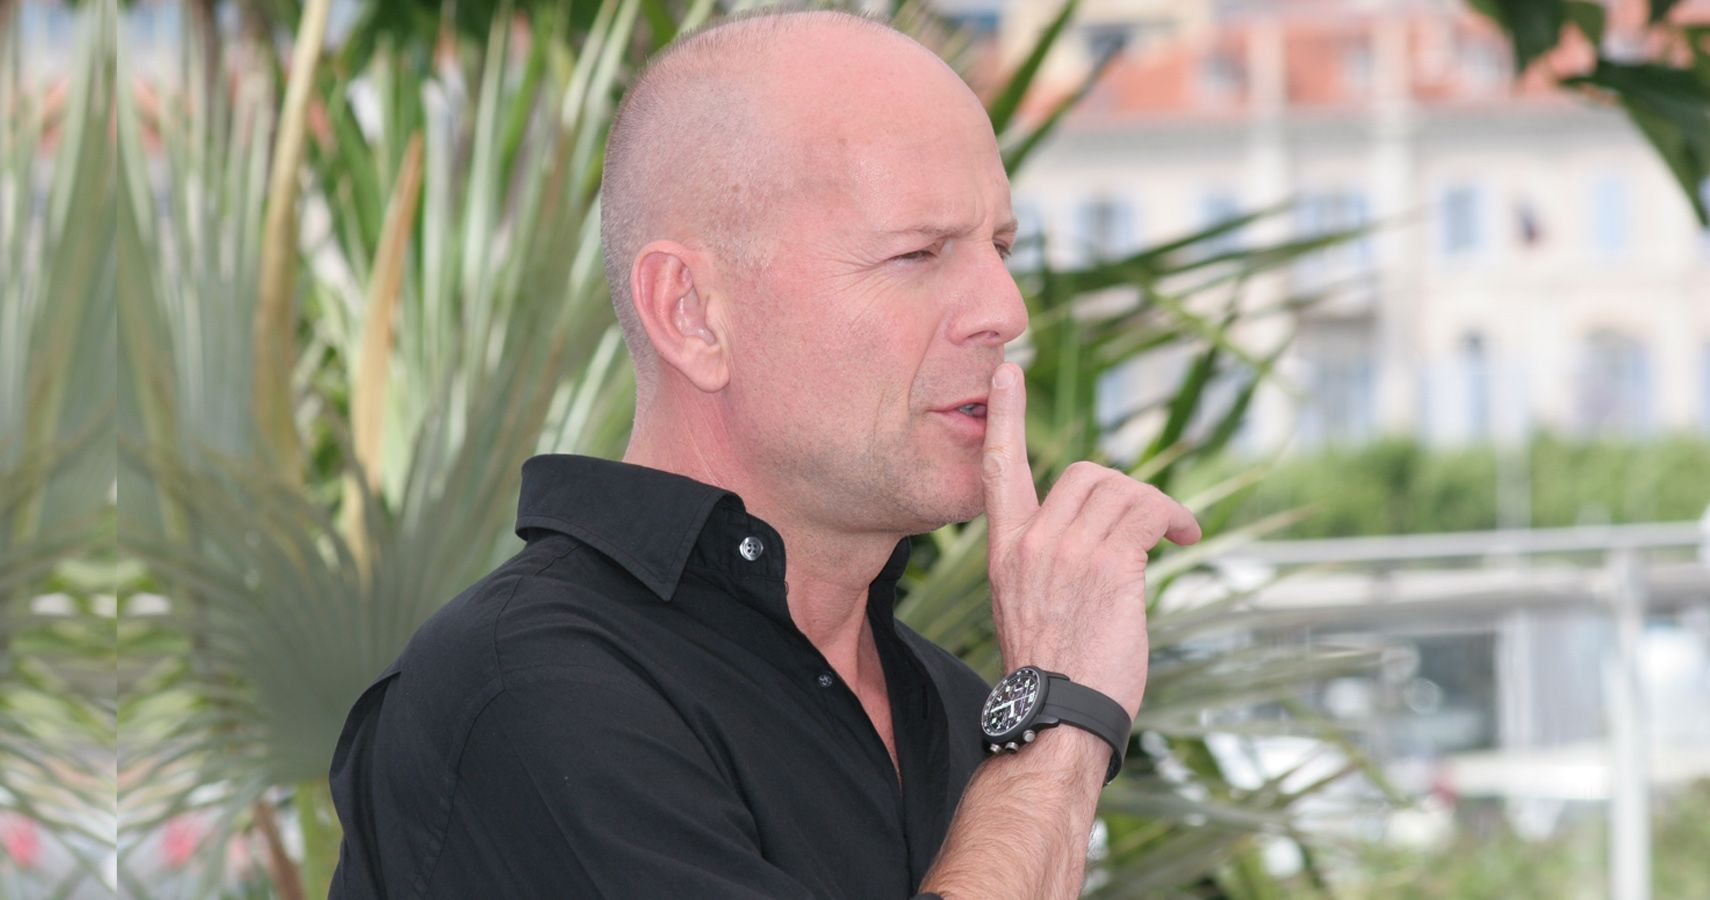 How Bruce Willis Landed Record-Breaking Pay For The Sixth Sense